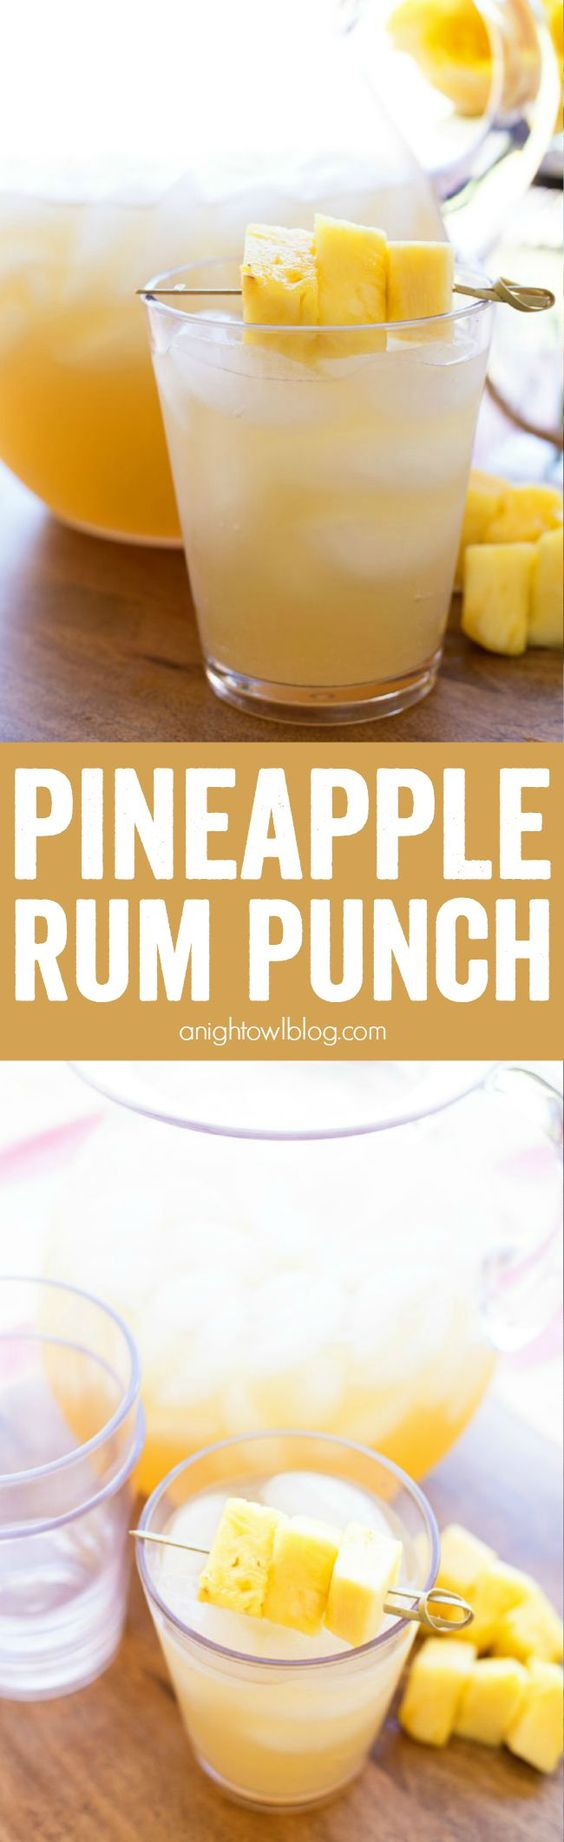 Pineapple Rum Punch | Recipe | Rum Punches, Pineapple Rum and Party ...